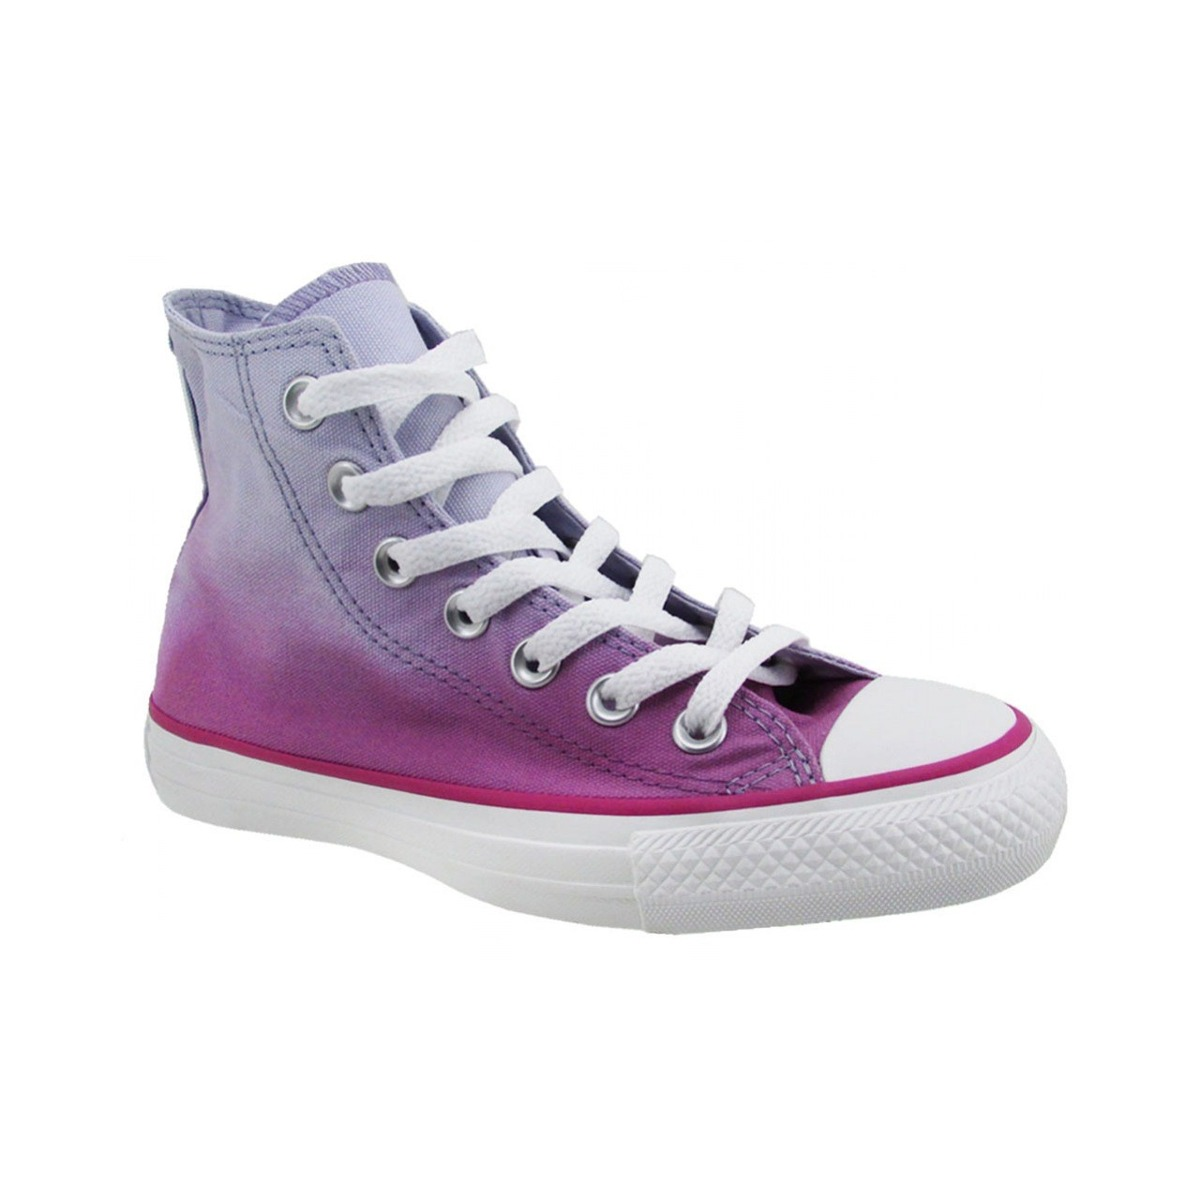 Zapatillas 538835b Converse Ct Mujer As hQtrCsxBd